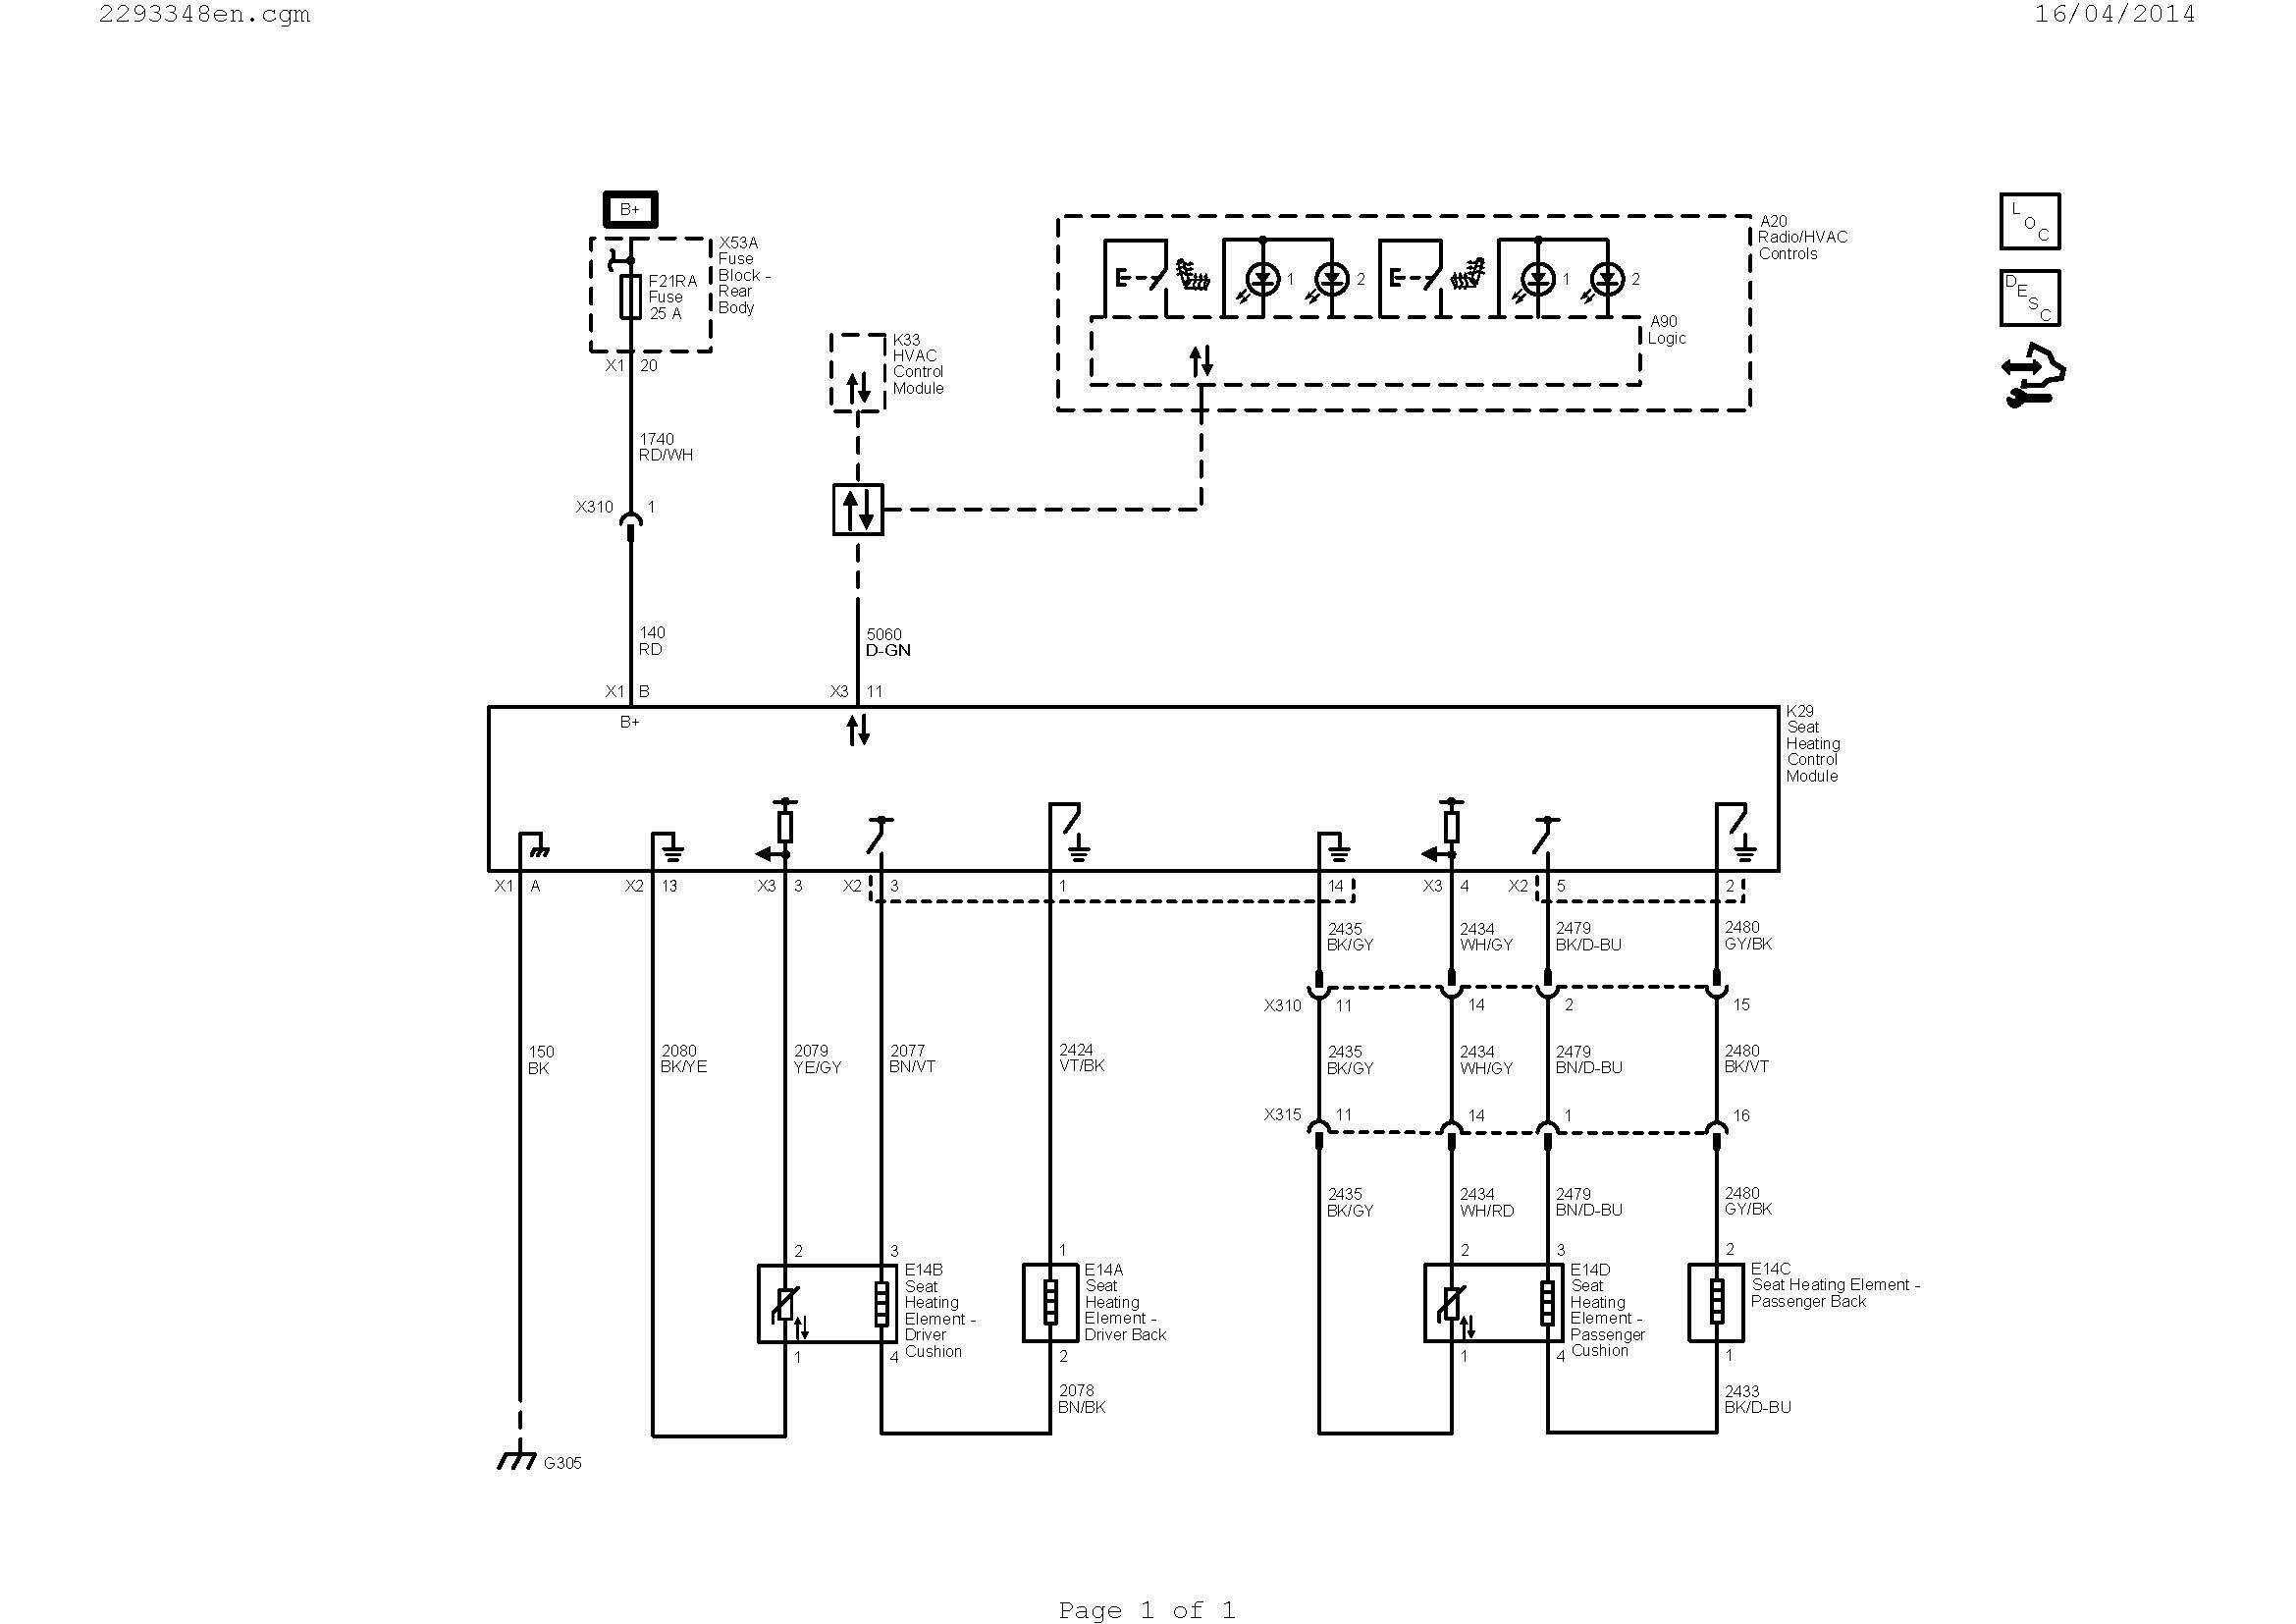 Sinpac Switch Wiring Diagram